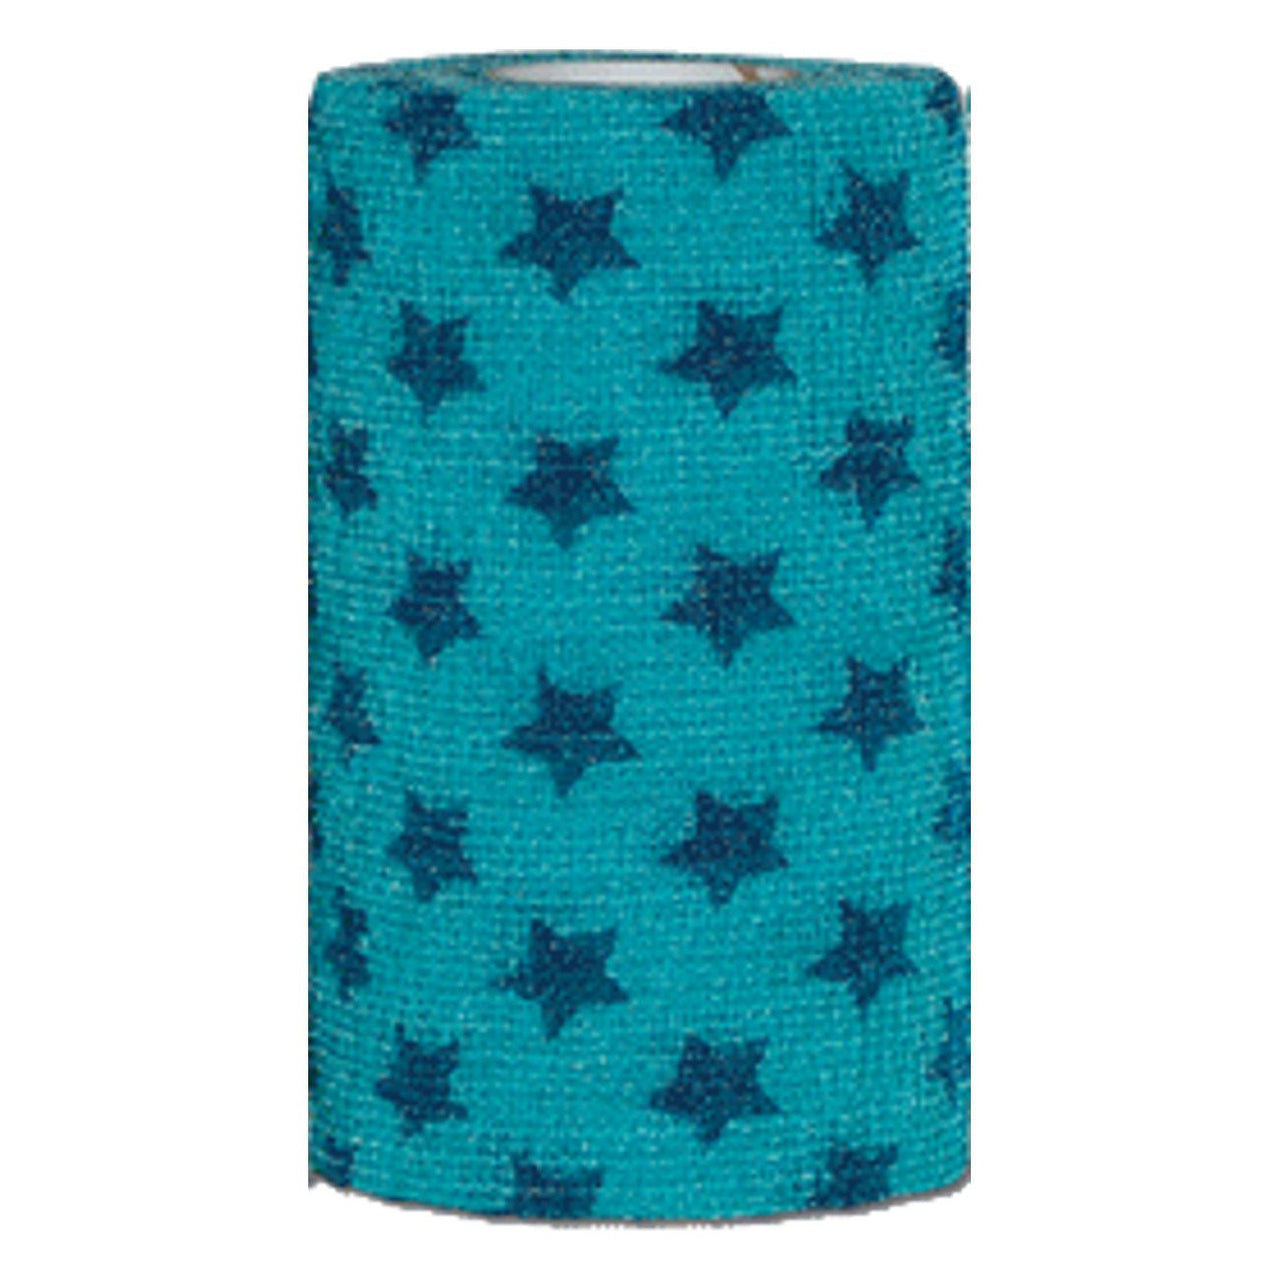 Andover Powerflex 4X15 Teal/blue Stars - Wound Dressing Andover - Canada